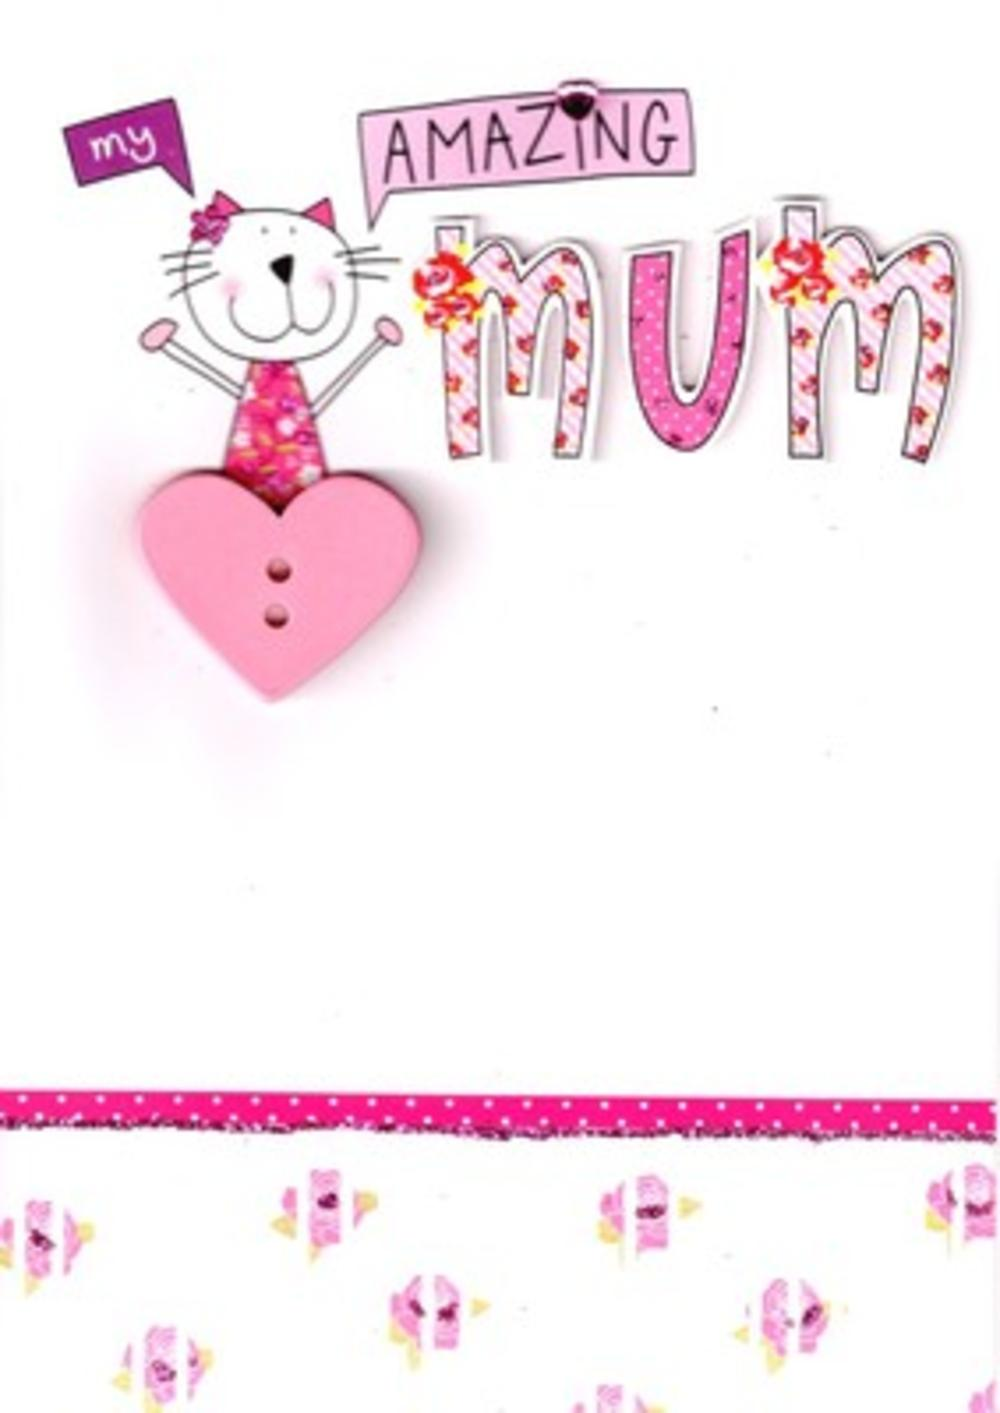 Stunning Hand-Finished Amazing Mum Mother's Day Card